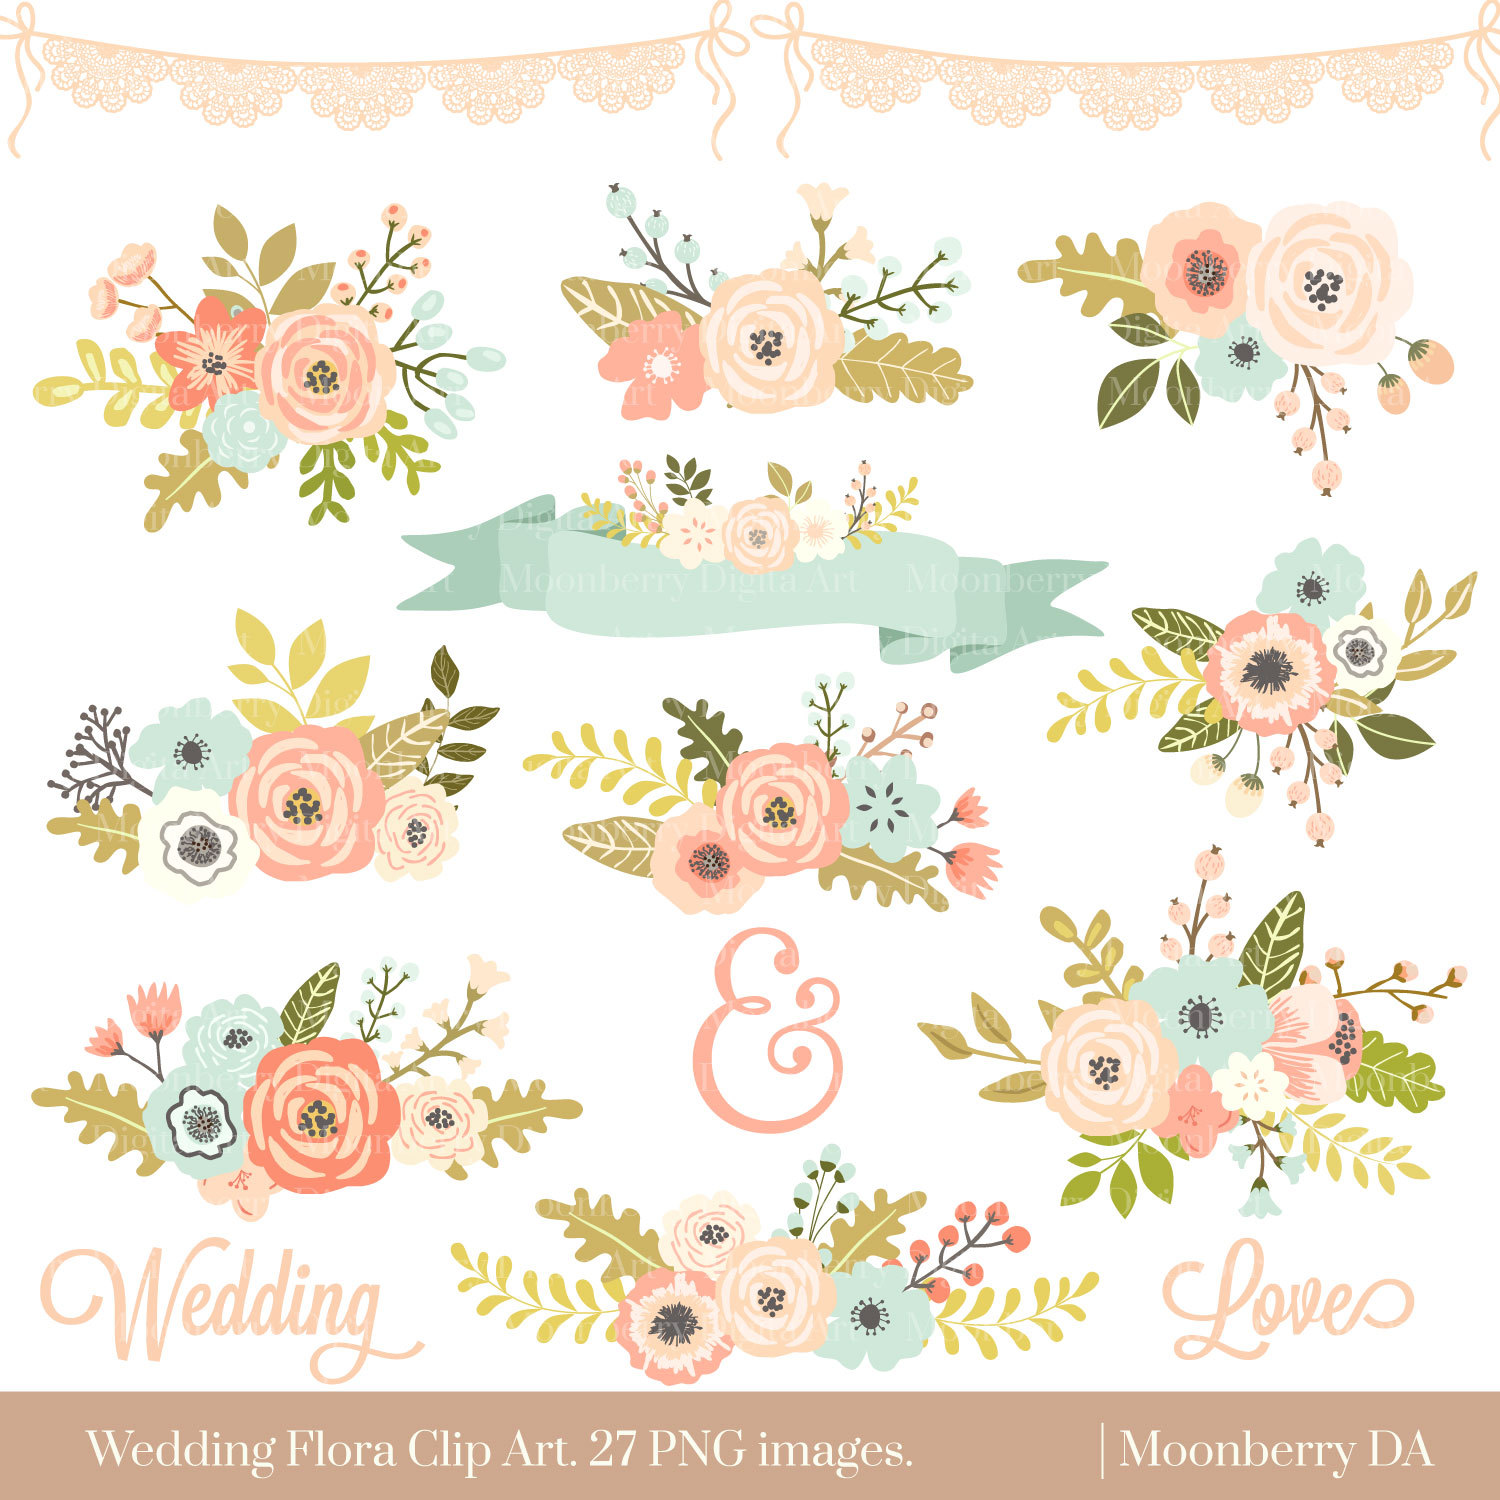 Wedding Floral Clipart u0026quot; FLORAL CLIPART u0026quot; Flowers Clipart. Floral Posies Clip Art. Wedding Clipart. Wedding Invitations. Commercial Use.